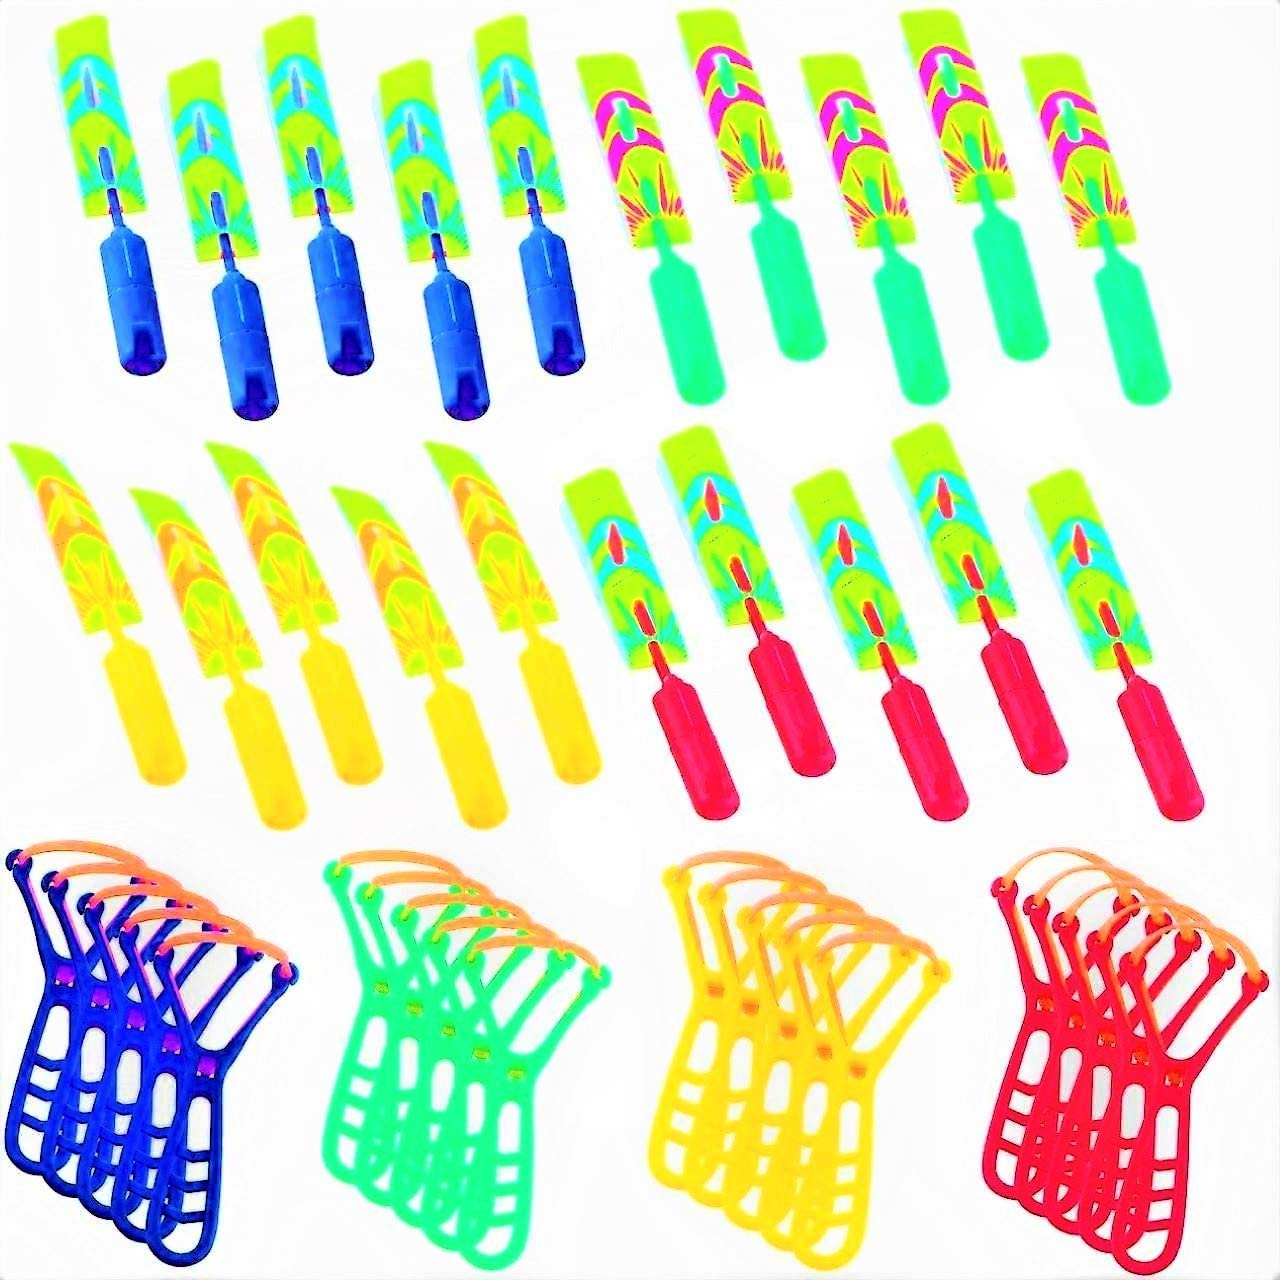 Helicopters 40Piece with Whistle LED Lights for Kids Rocket Slingshot Flying Copters - 20 Slingshot+20Helicopter Glow in The Dark Party Supplies Outdoor Game for Child Kids Birthday Gifts